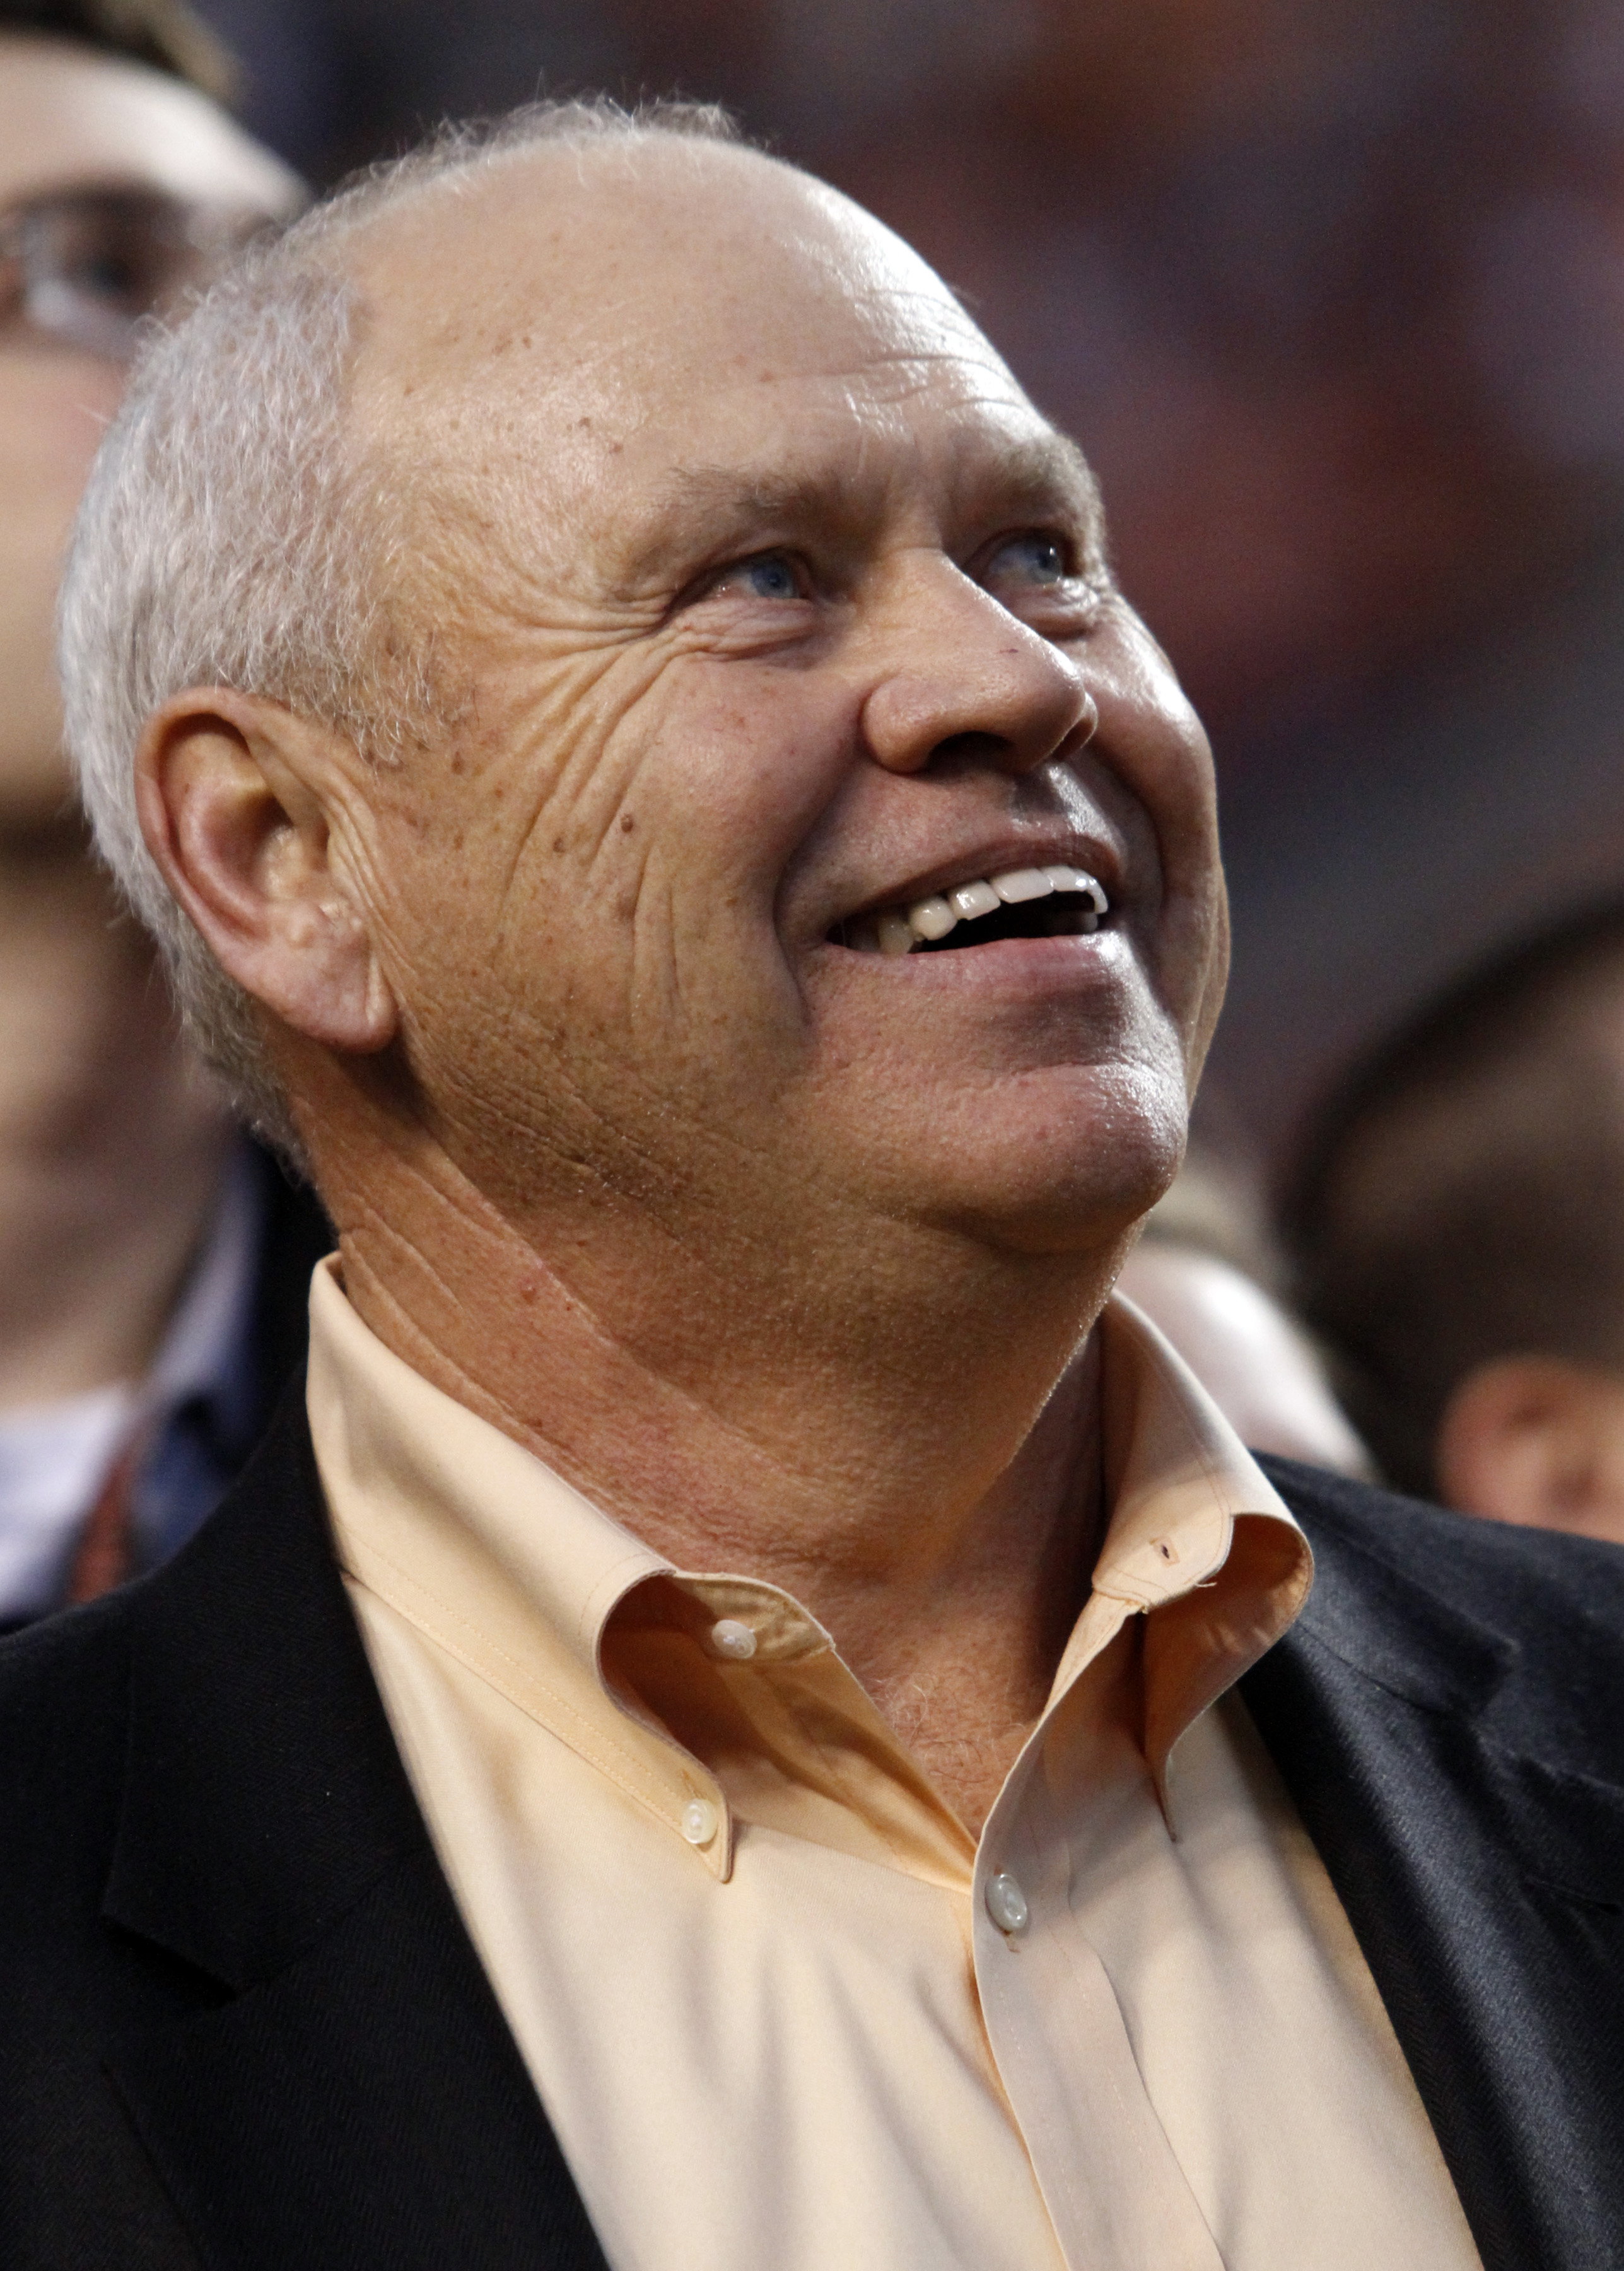 Former Tennessee head football coach Phillip Fulmer smiles as he watches the Jumbotron before the start of an NCAA college football game between Alabama and Tennessee, Saturday, Oct. 20, 2012, in Knoxville, Tenn. (AP Photo/Wade Payne)